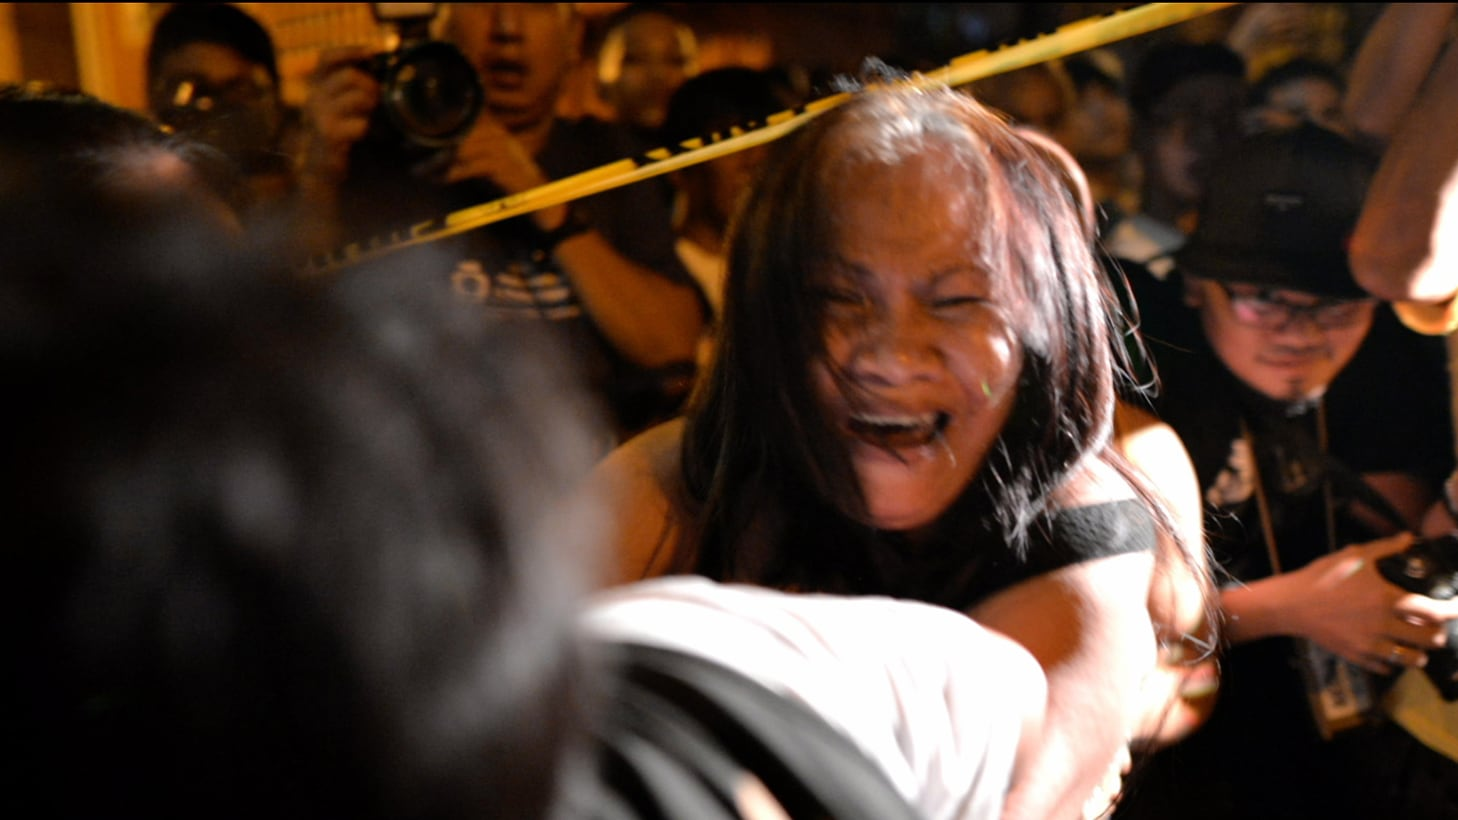 A woman fights with a police officer at a crime scene in Manila. (Photo by Ezra Acayan)